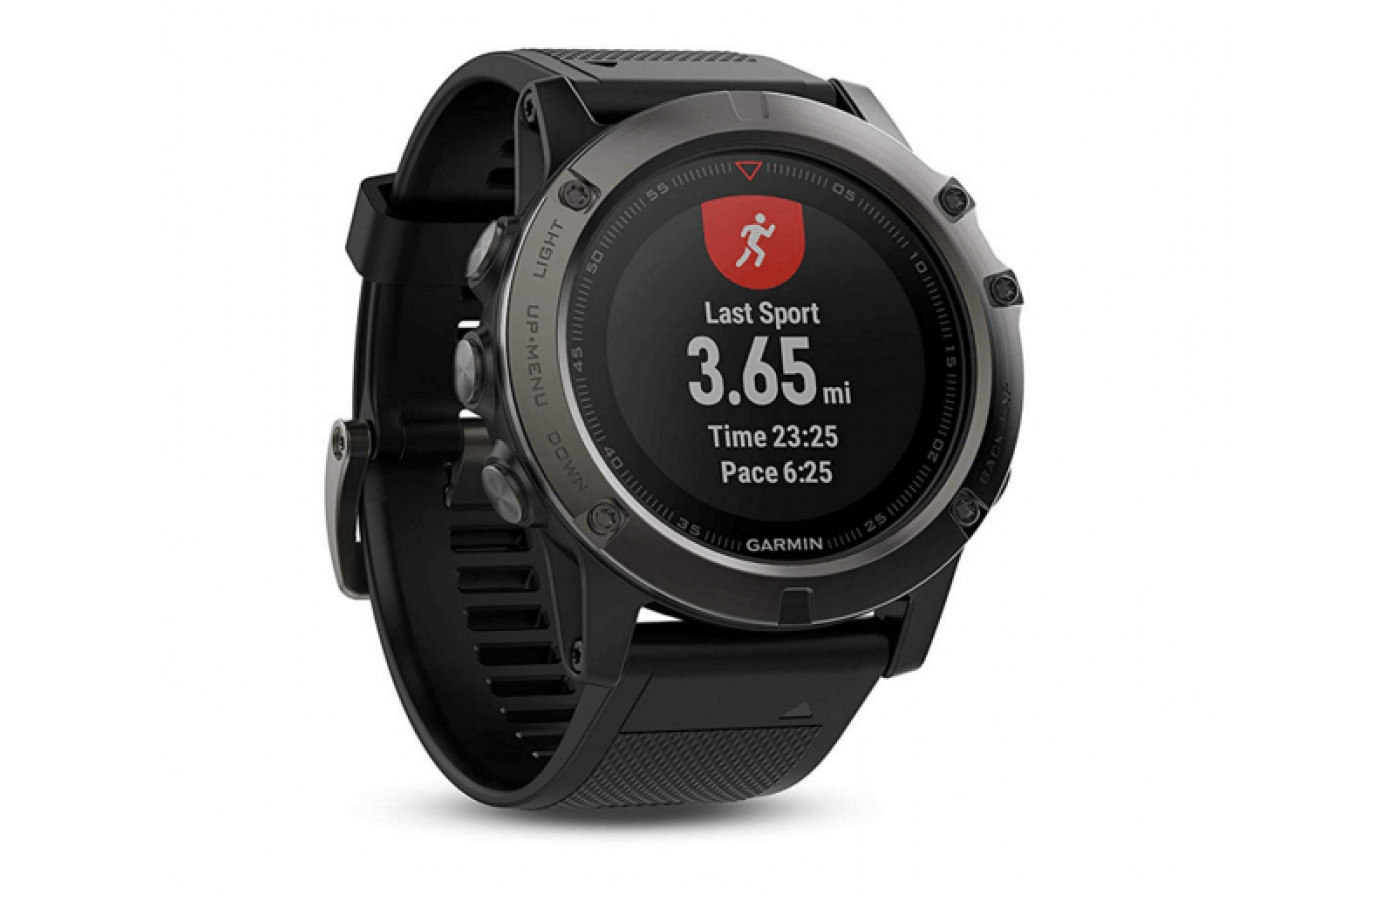 The Fenix 5X is equipped with tracking features for multiple activities.